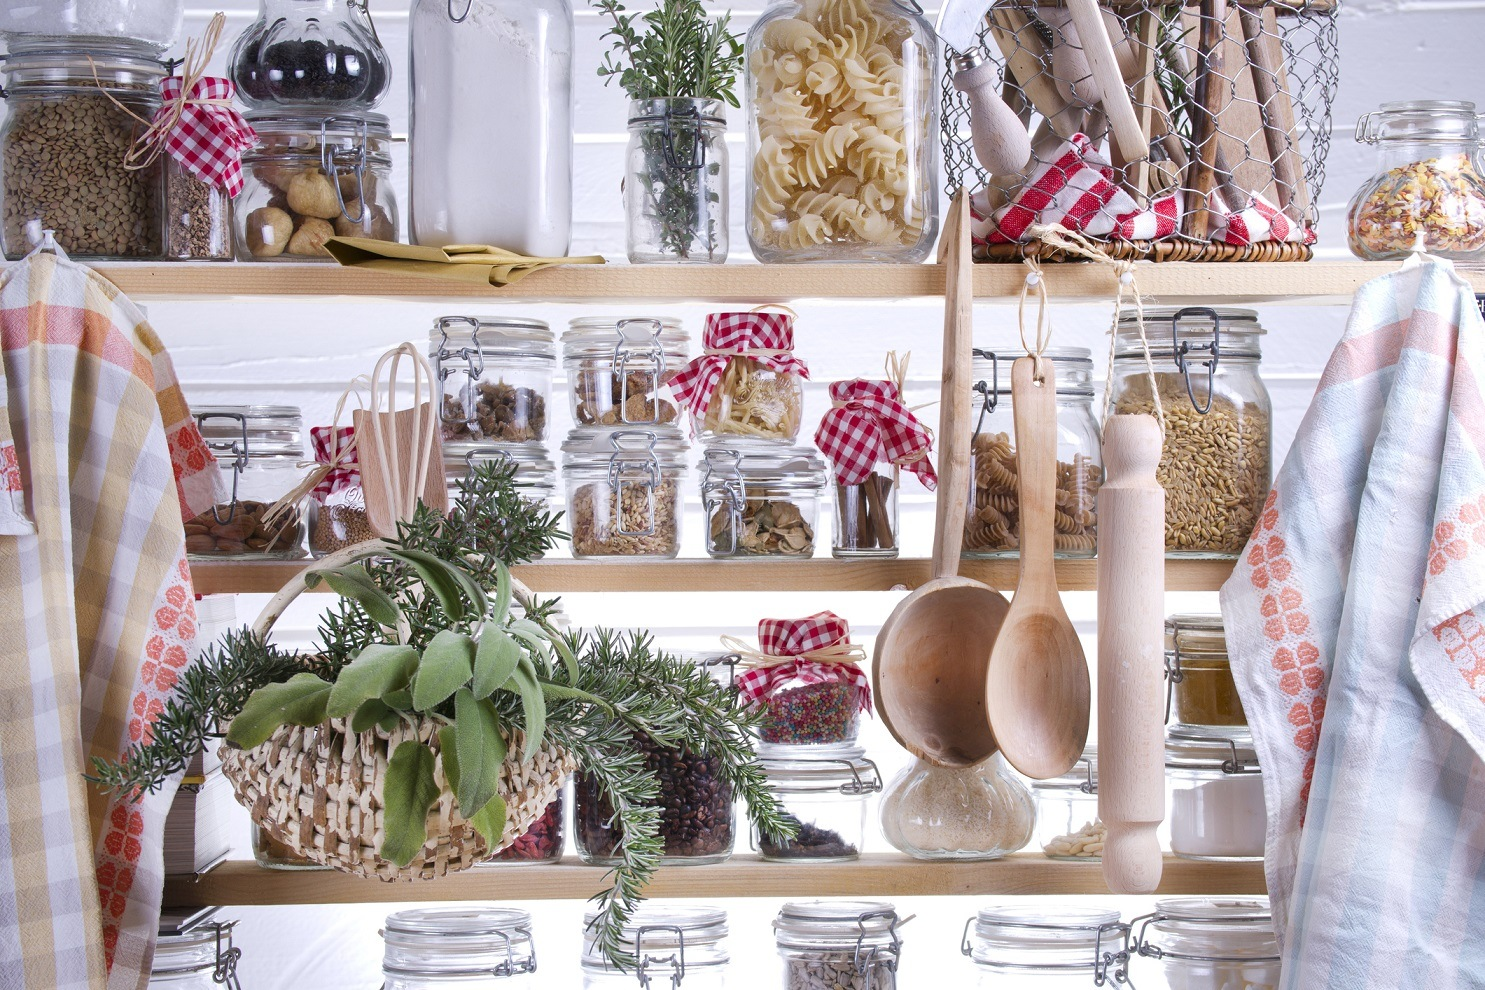 Household pantry